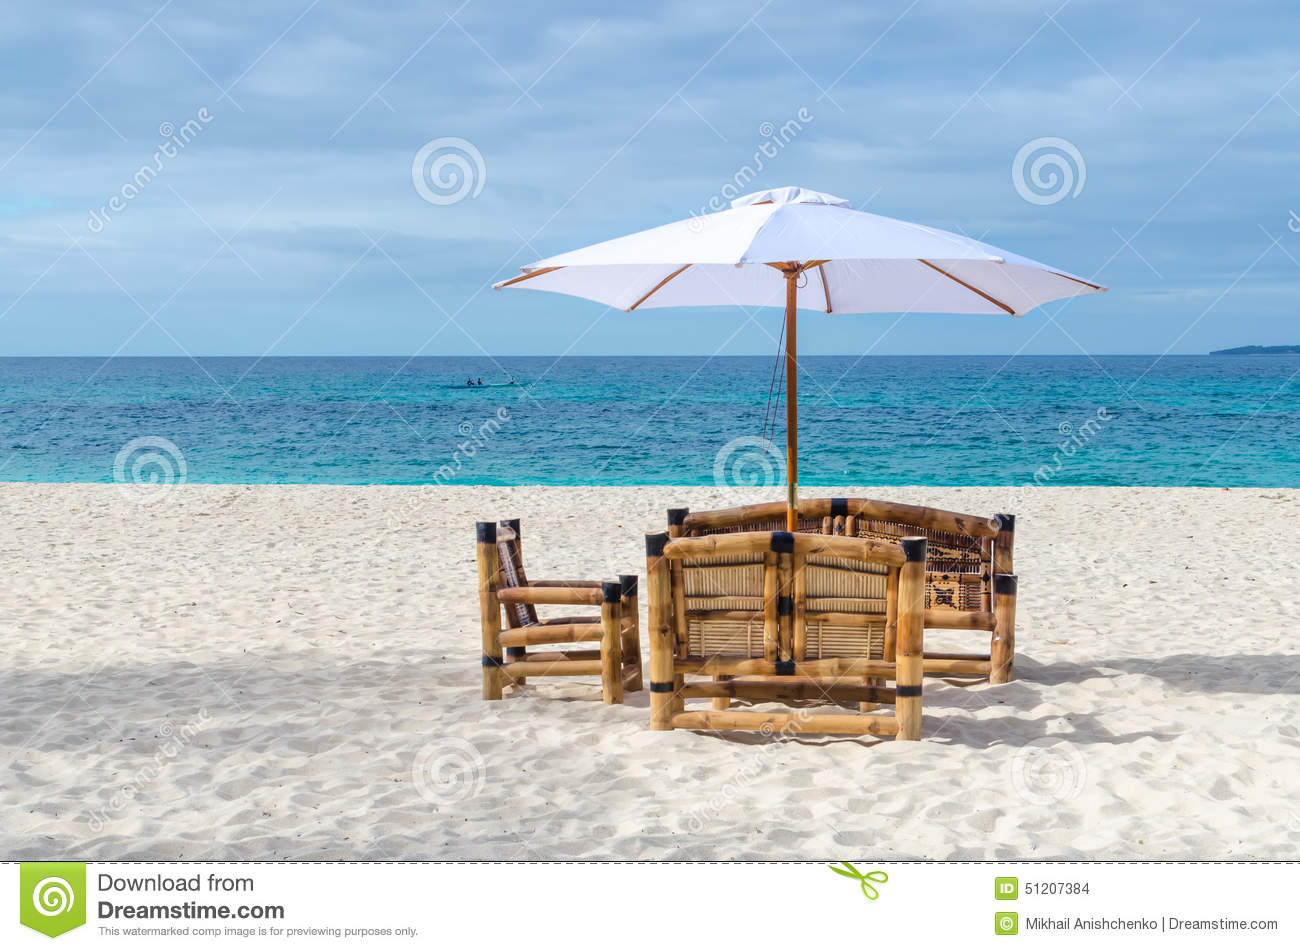 Tropical Resort View With Beach Table, Chairs And Umbrella